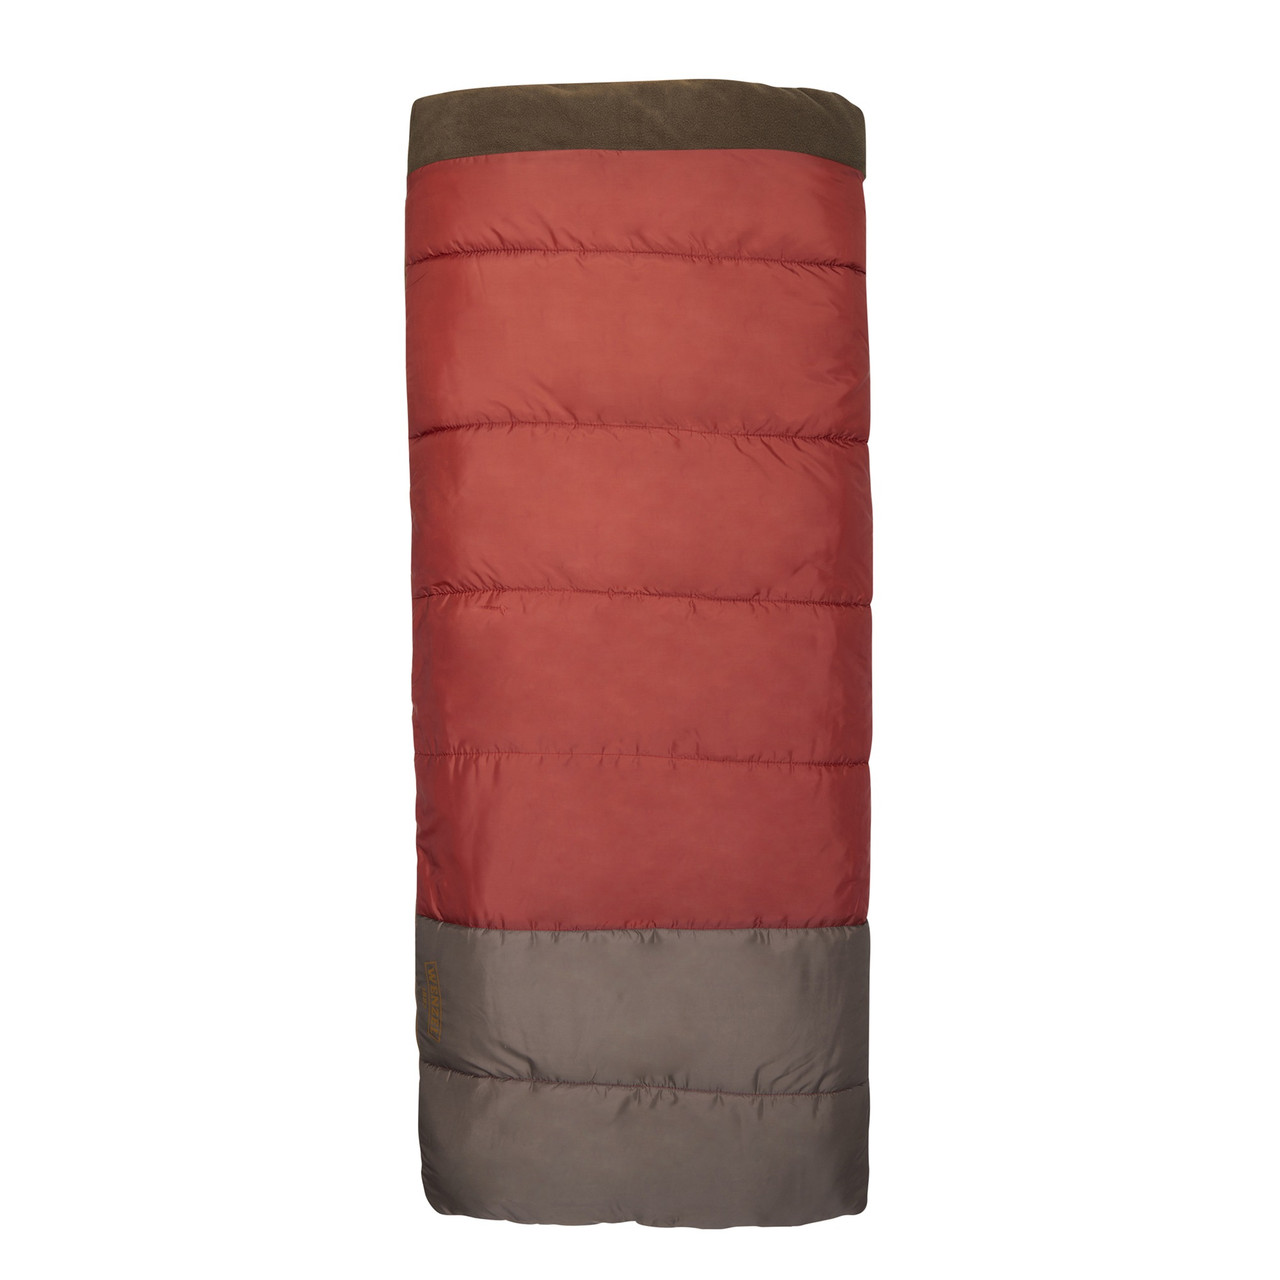 Wenzel Lodgepole Sleeping Bag, red, shown fully zipped